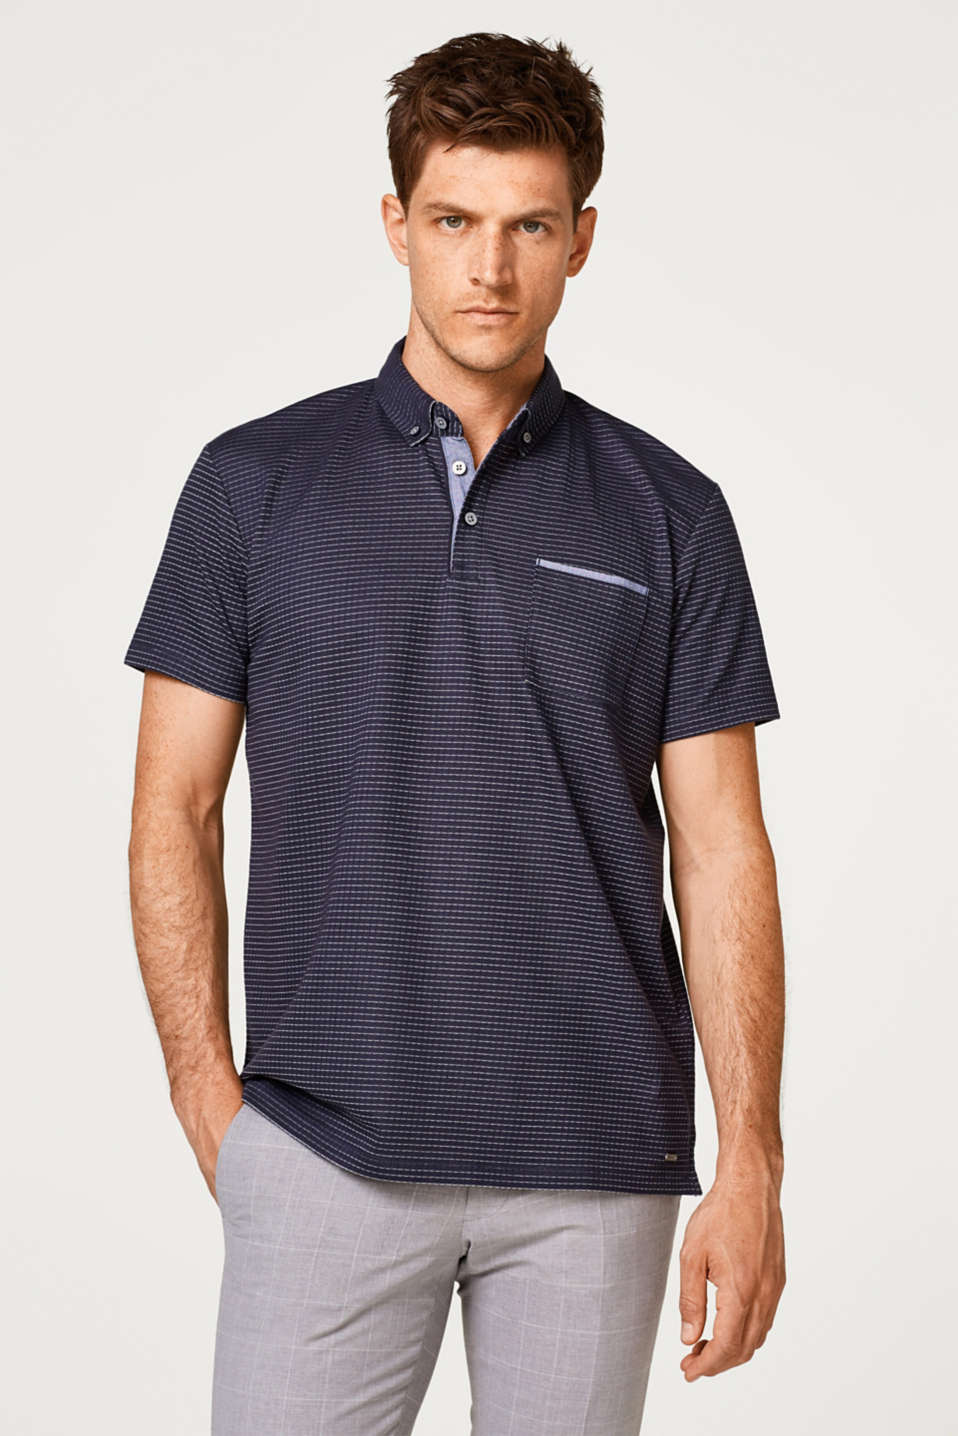 Esprit - Straight polo shirt with a button-down collar